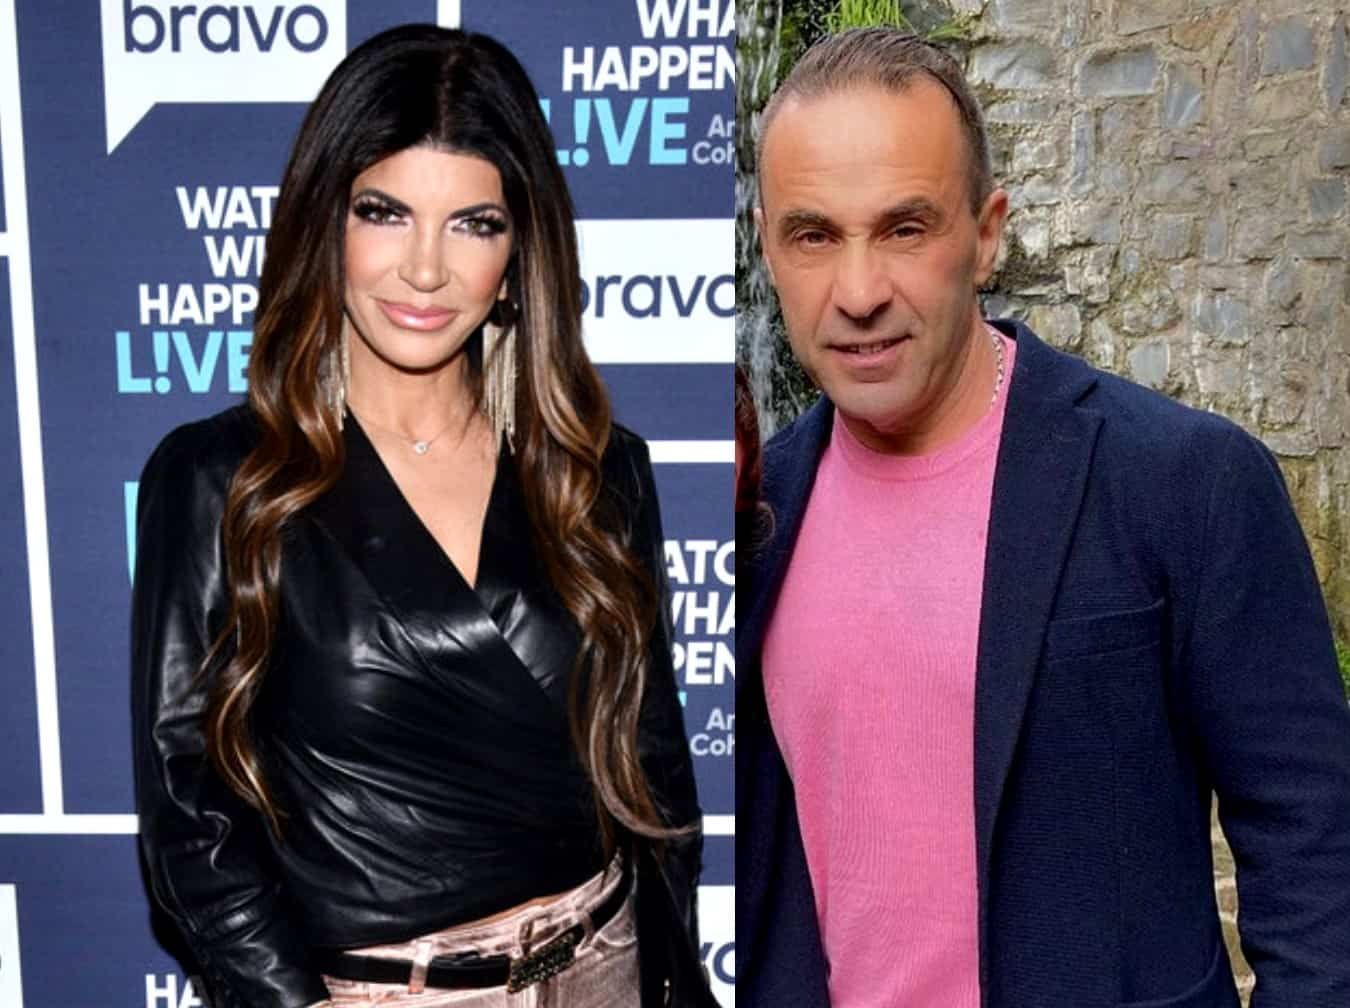 REPORT: RHONJ's Teresa Giudice Still Considering Divorcing Joe Giudice Despite Flirty Messages From Him After Recent Trip to Italy, Find Out Why